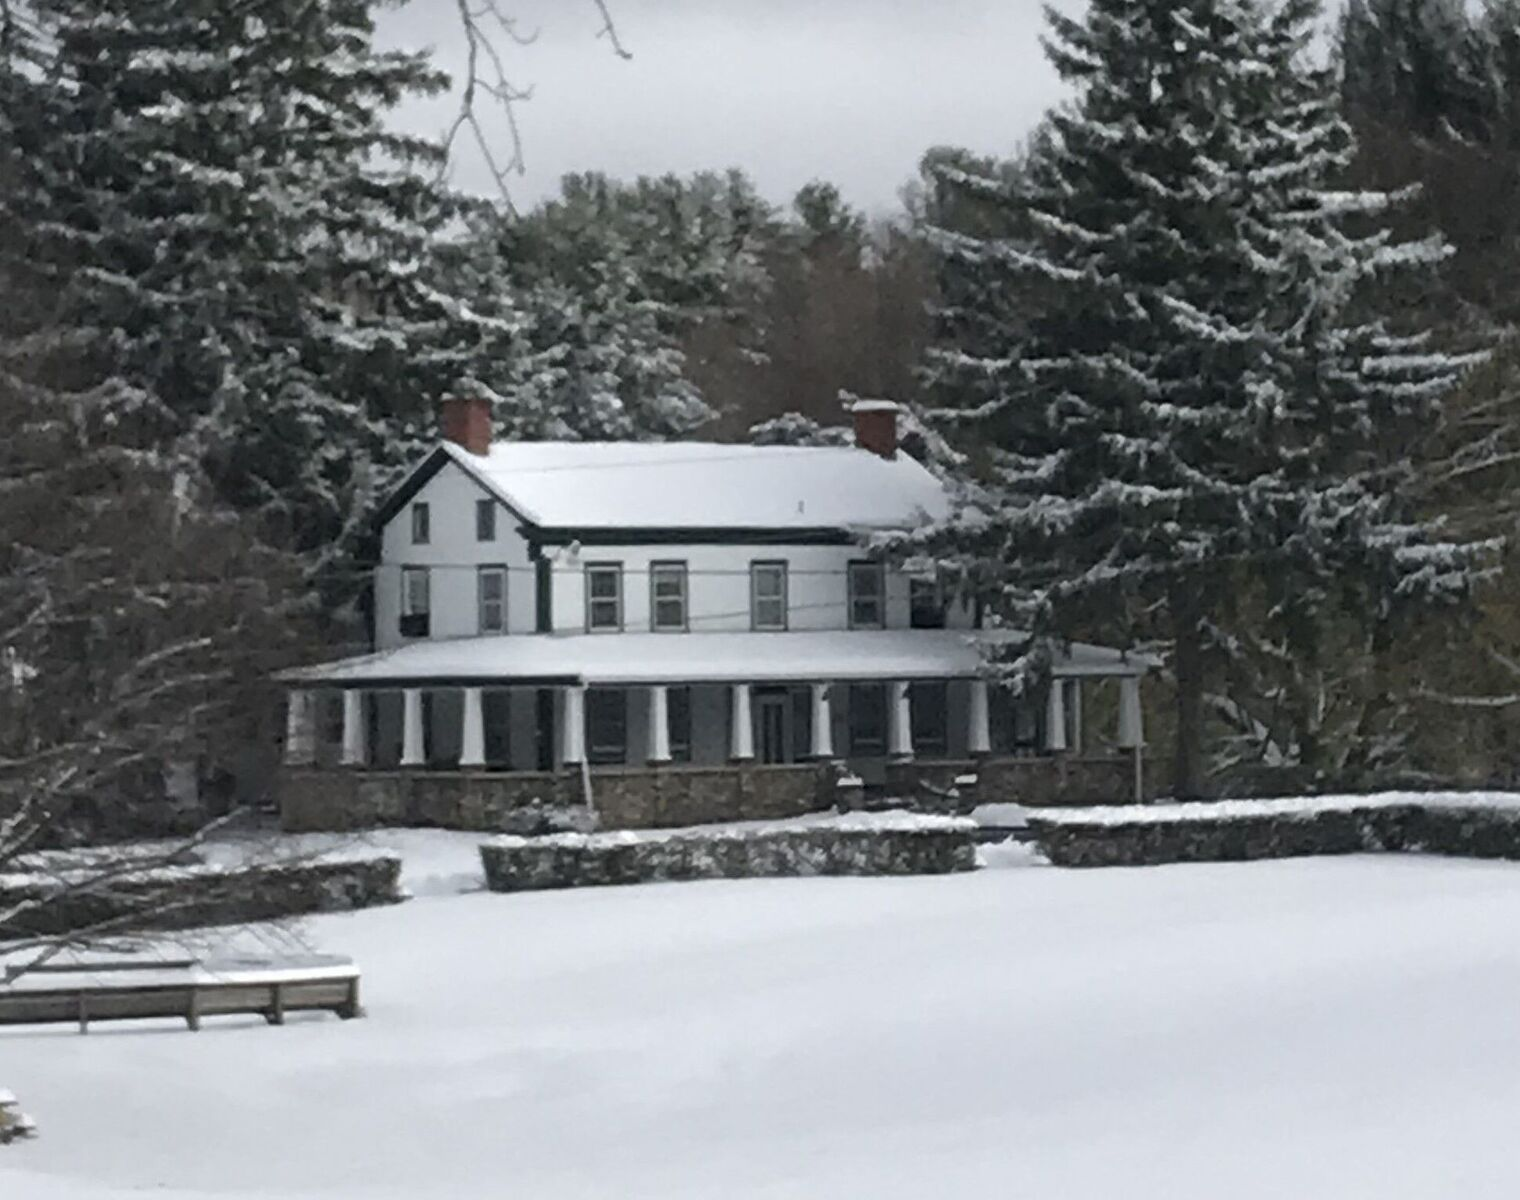 The first snowfall  of the off-season arrived early this year—pre-Thanksgiving (November 16 for all you record-keepers). Thanks to caretaker Teddy Lydon for the photo. Within a few days, temperatures were up over 50 degrees and the snow completely melted.